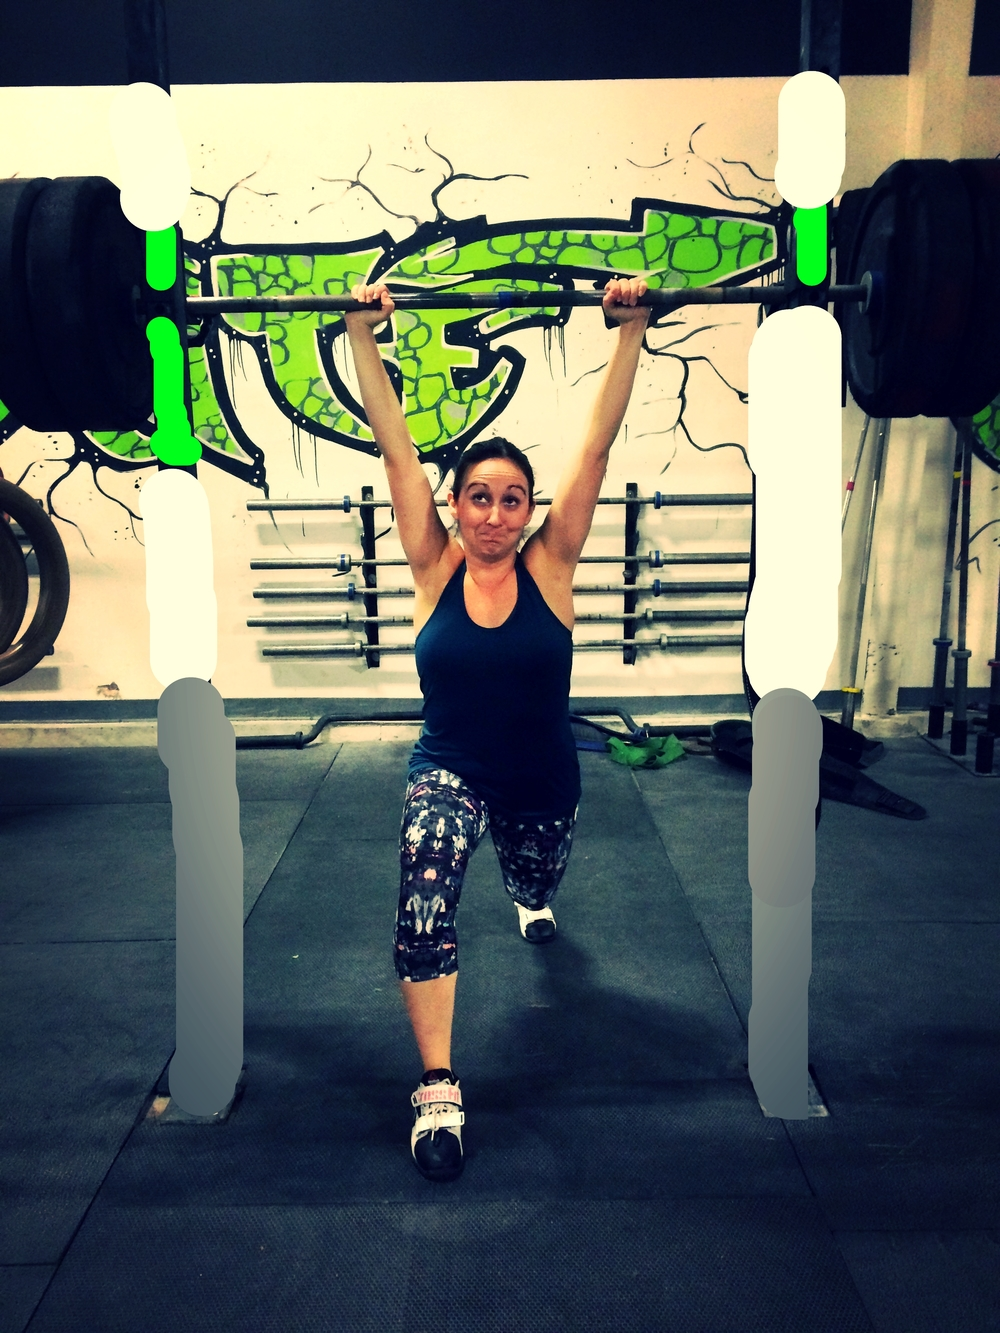 If anyone is looking for pointers on an effortless Clean and Jerk, just ask Steph!